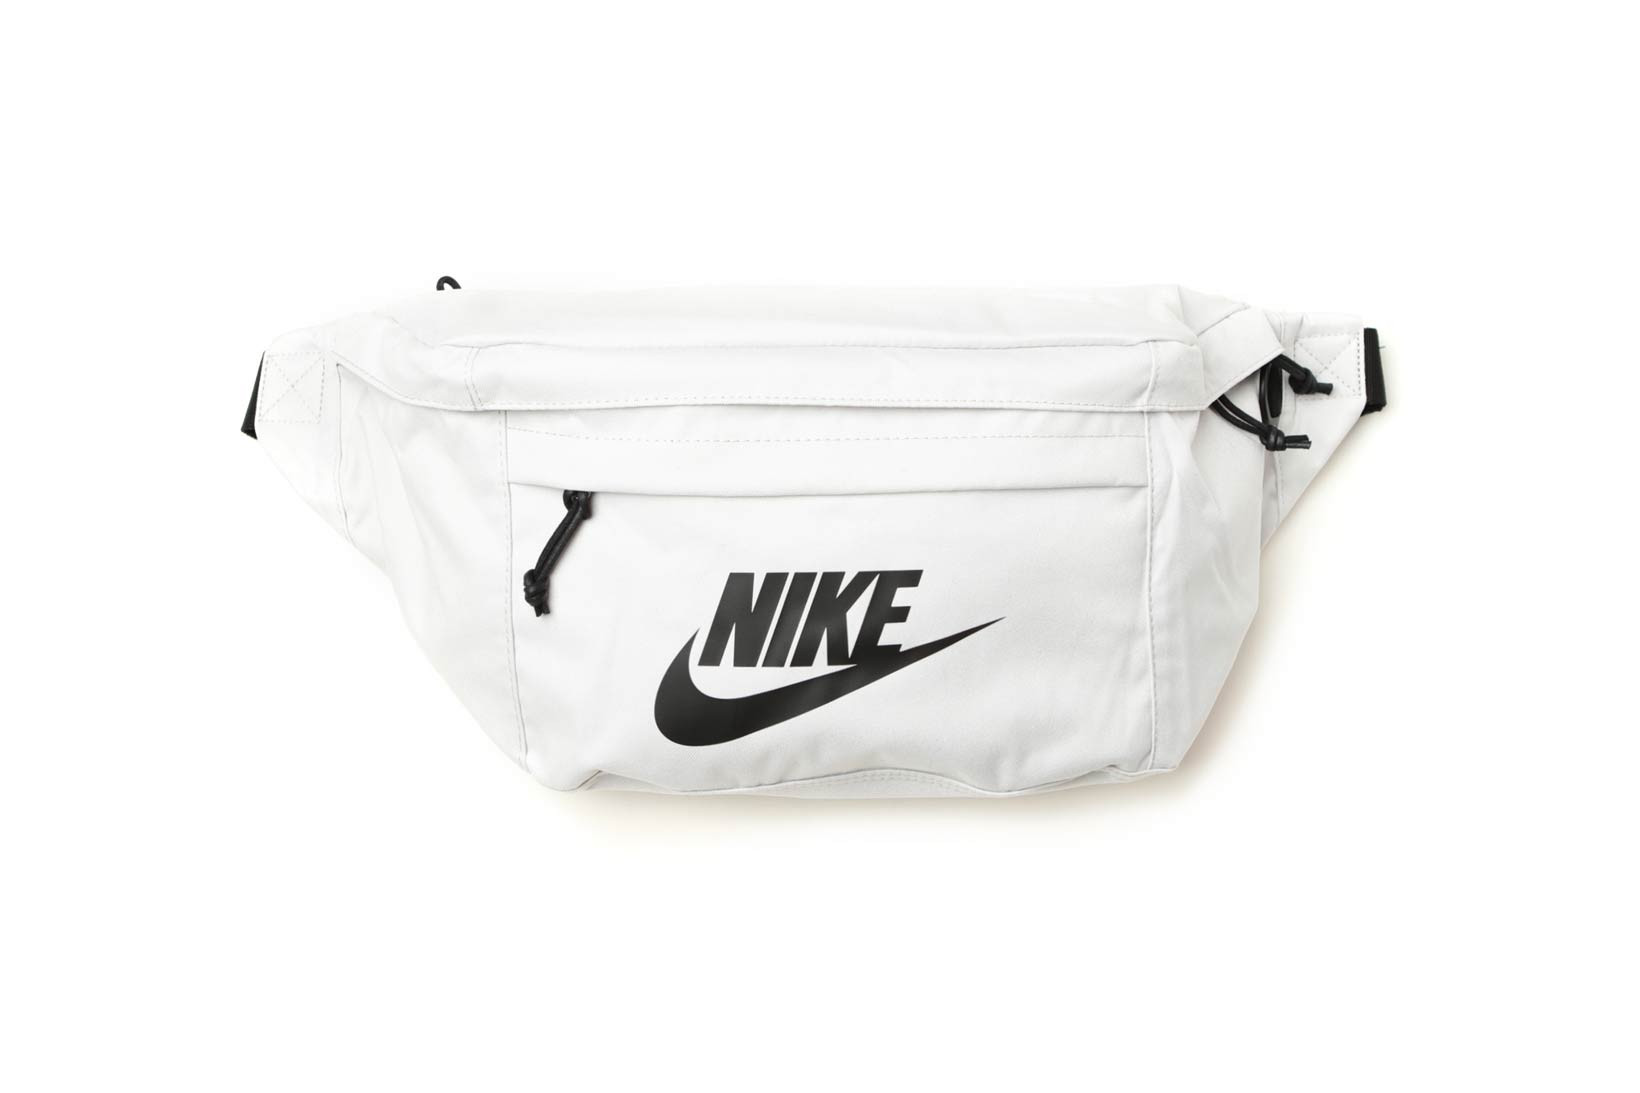 Nike\u0027s Tech Hip Pack in White, Black and Gray